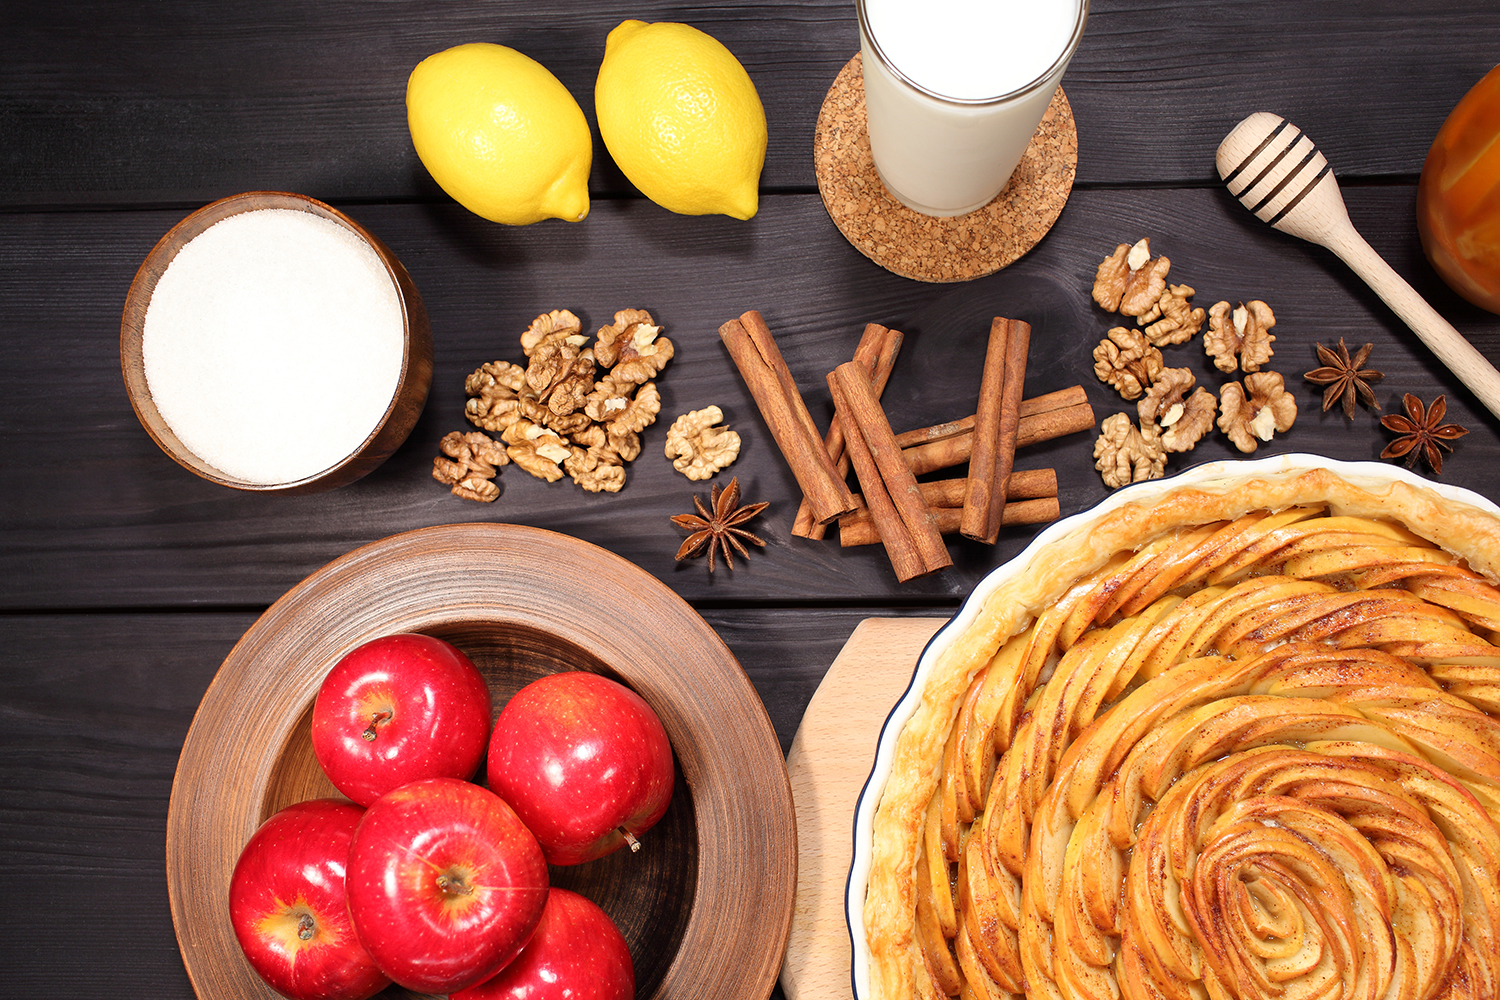 Set 12 photos Apple Pie and raw ingredients for baking. Sweet food series. Dessert. Top view example image 9